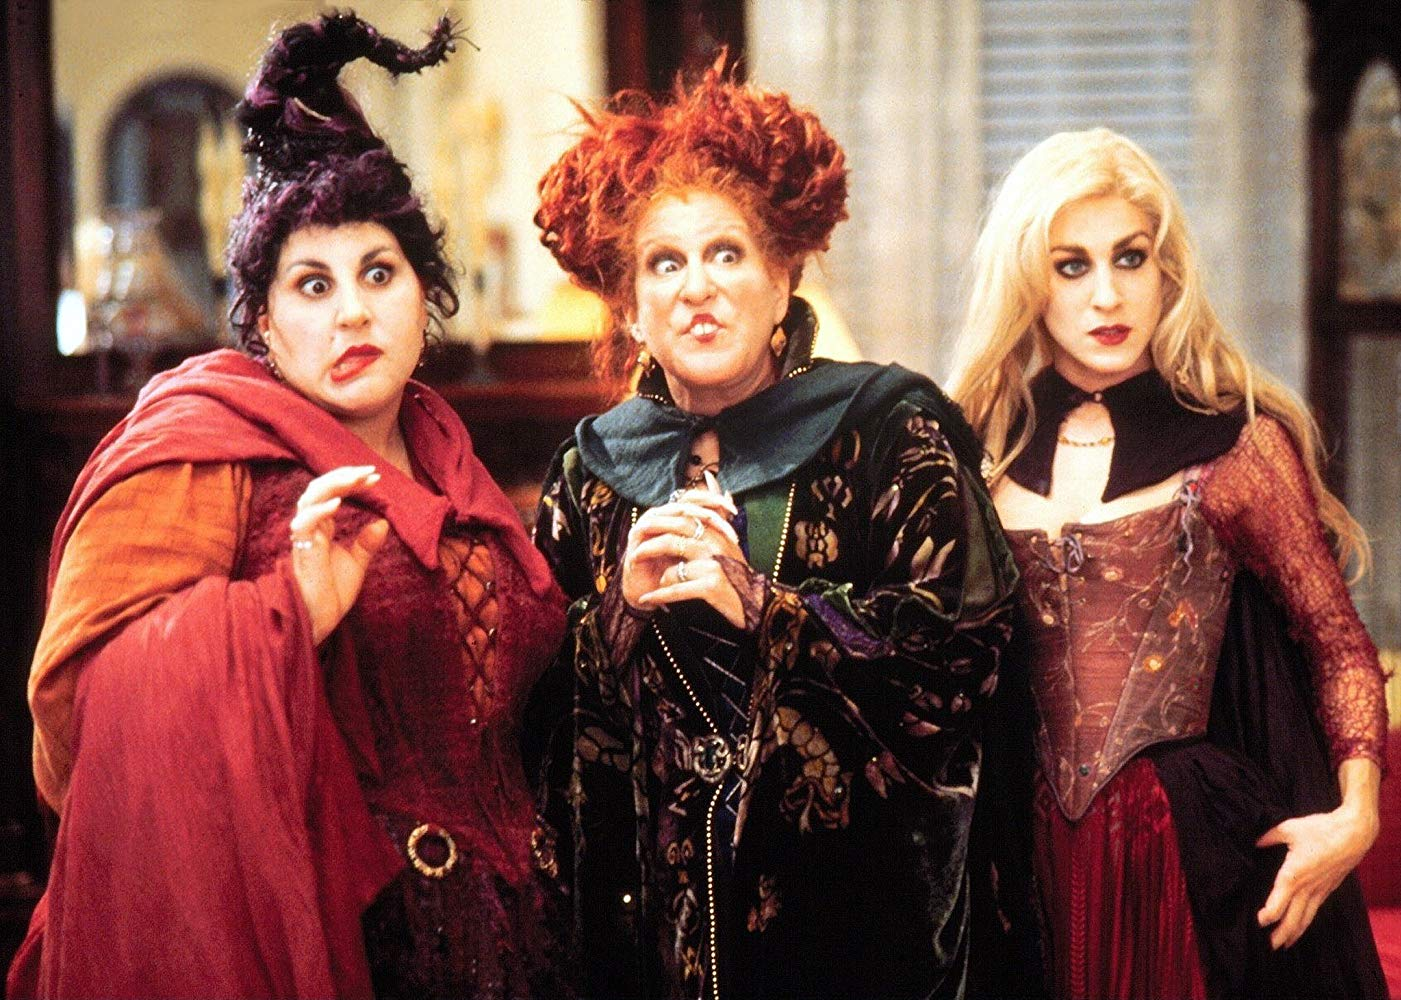 Kathy Najimy, Bette Midler and Sarah Jessica Parker in Hocus Pocus (1993)